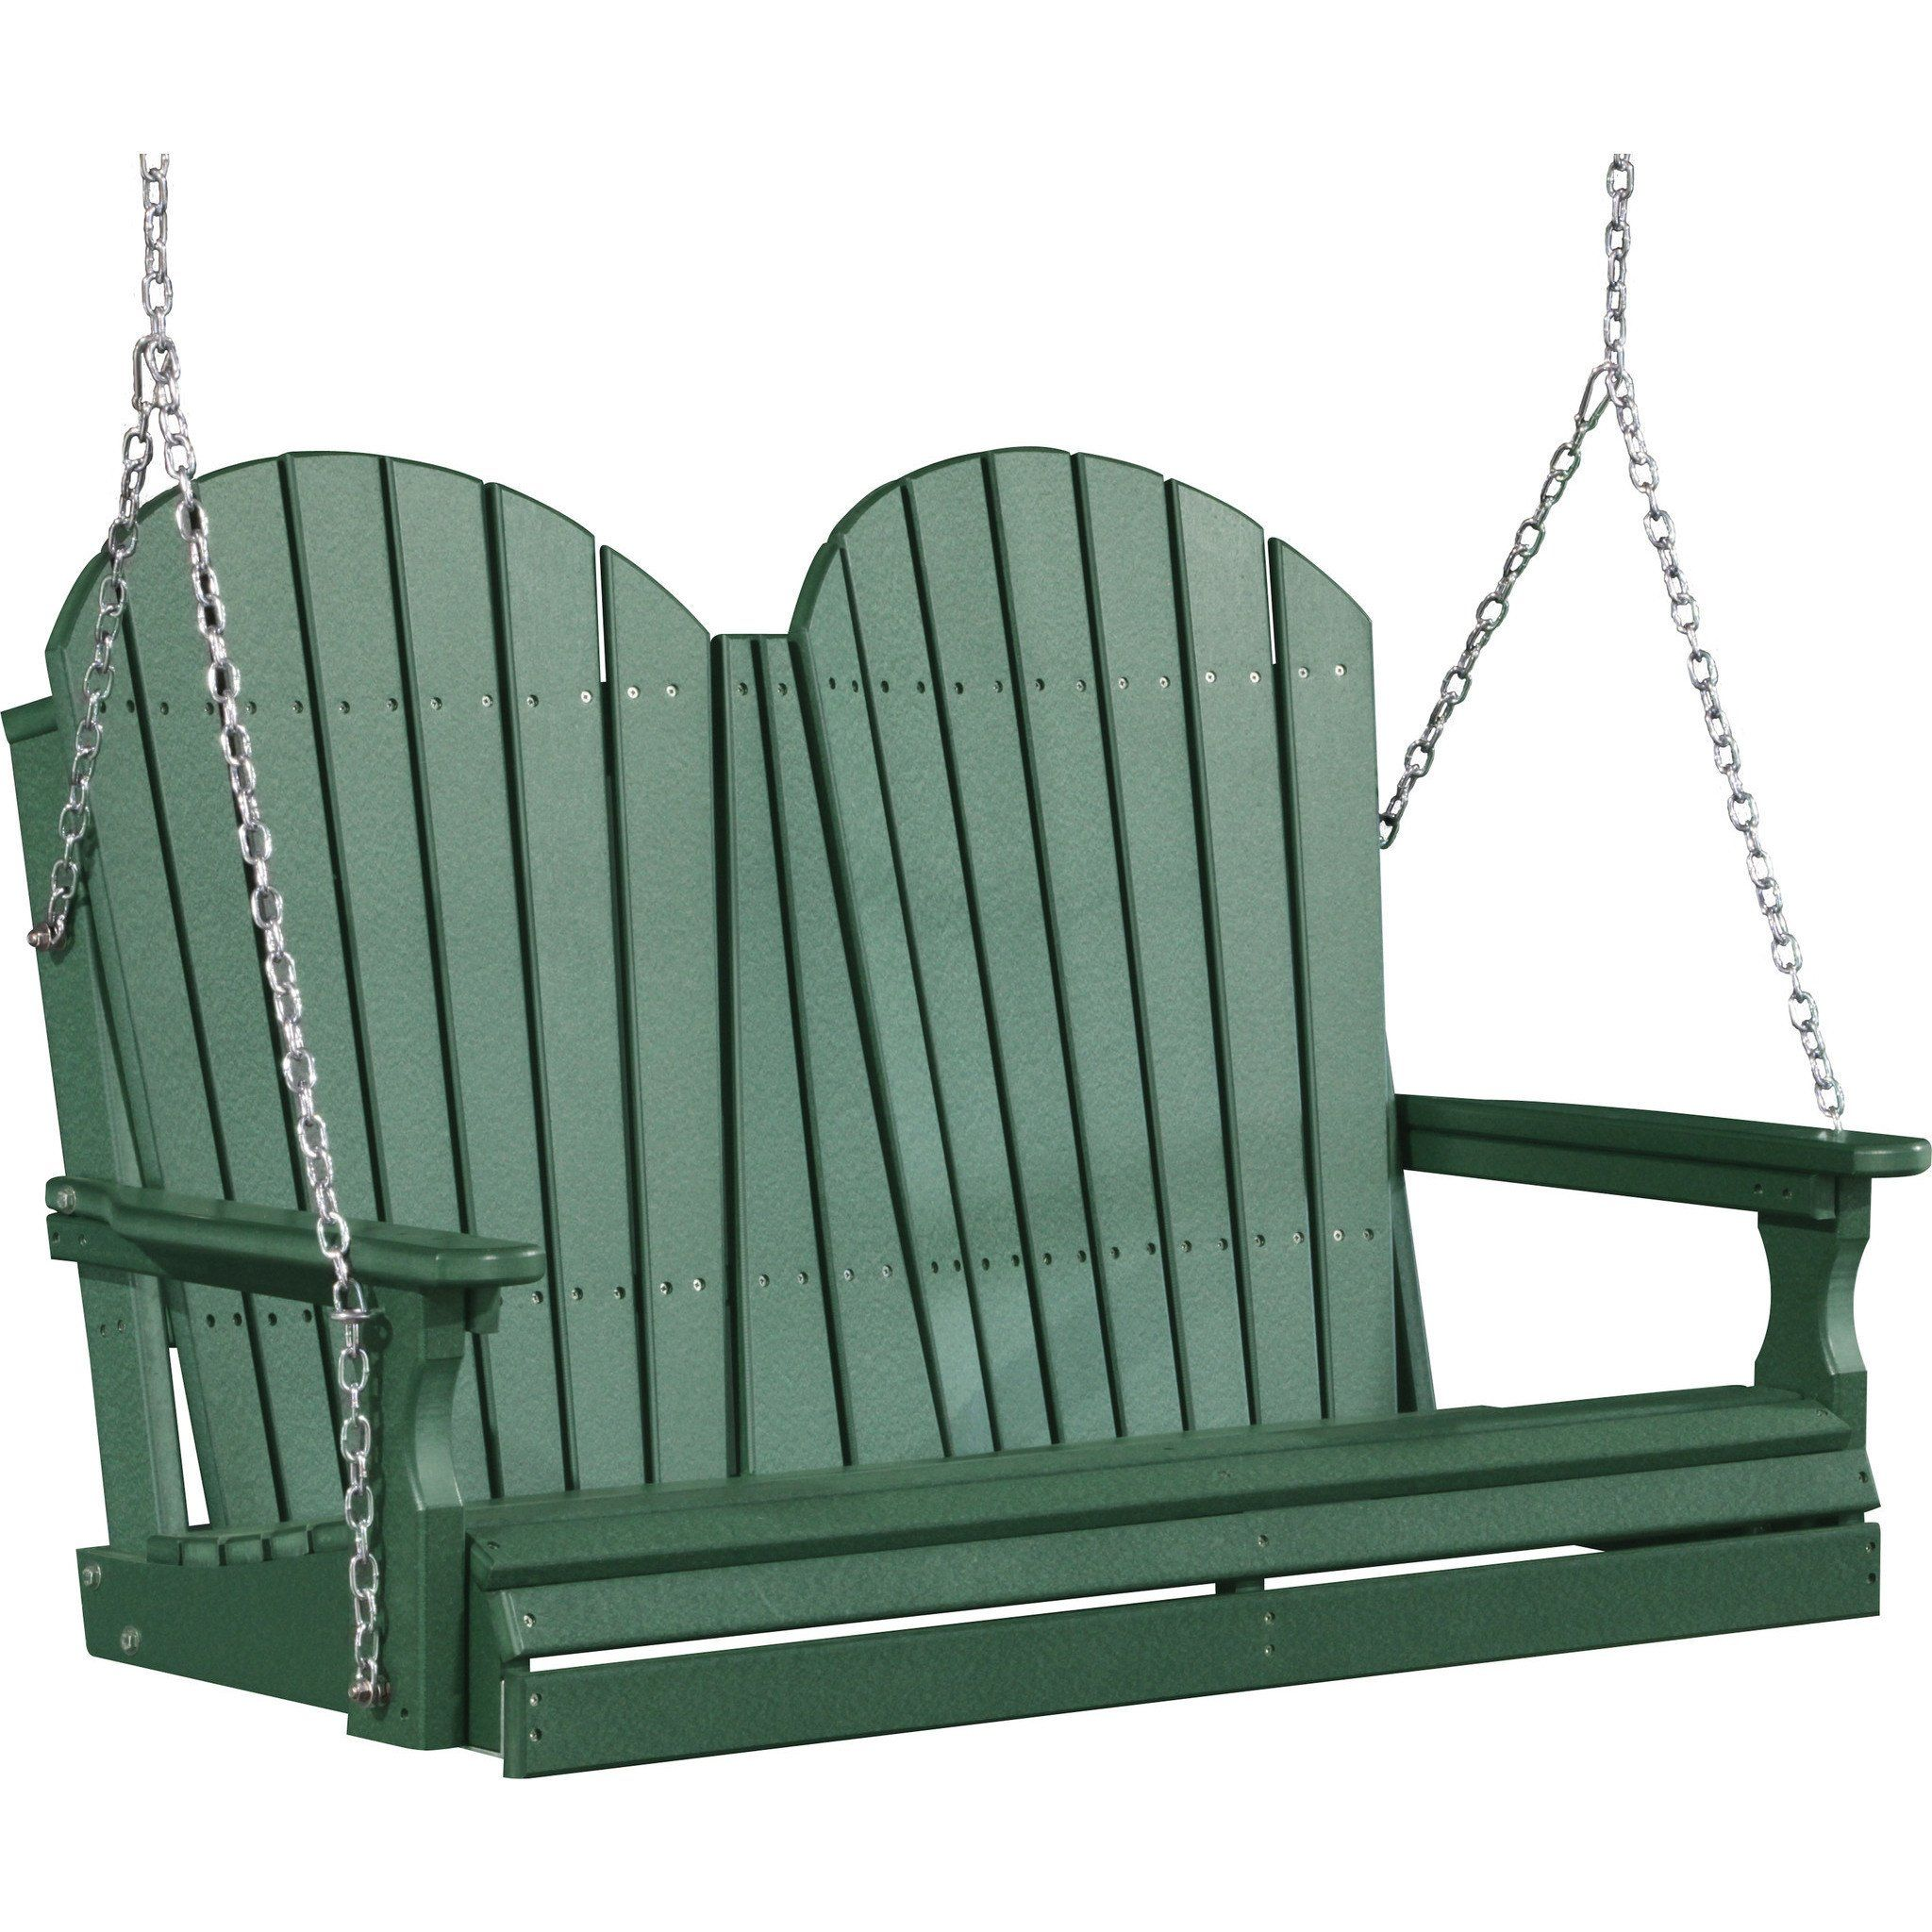 LuxCraft Adirondack 4ft. Recycled Plastic Porch Swing ...